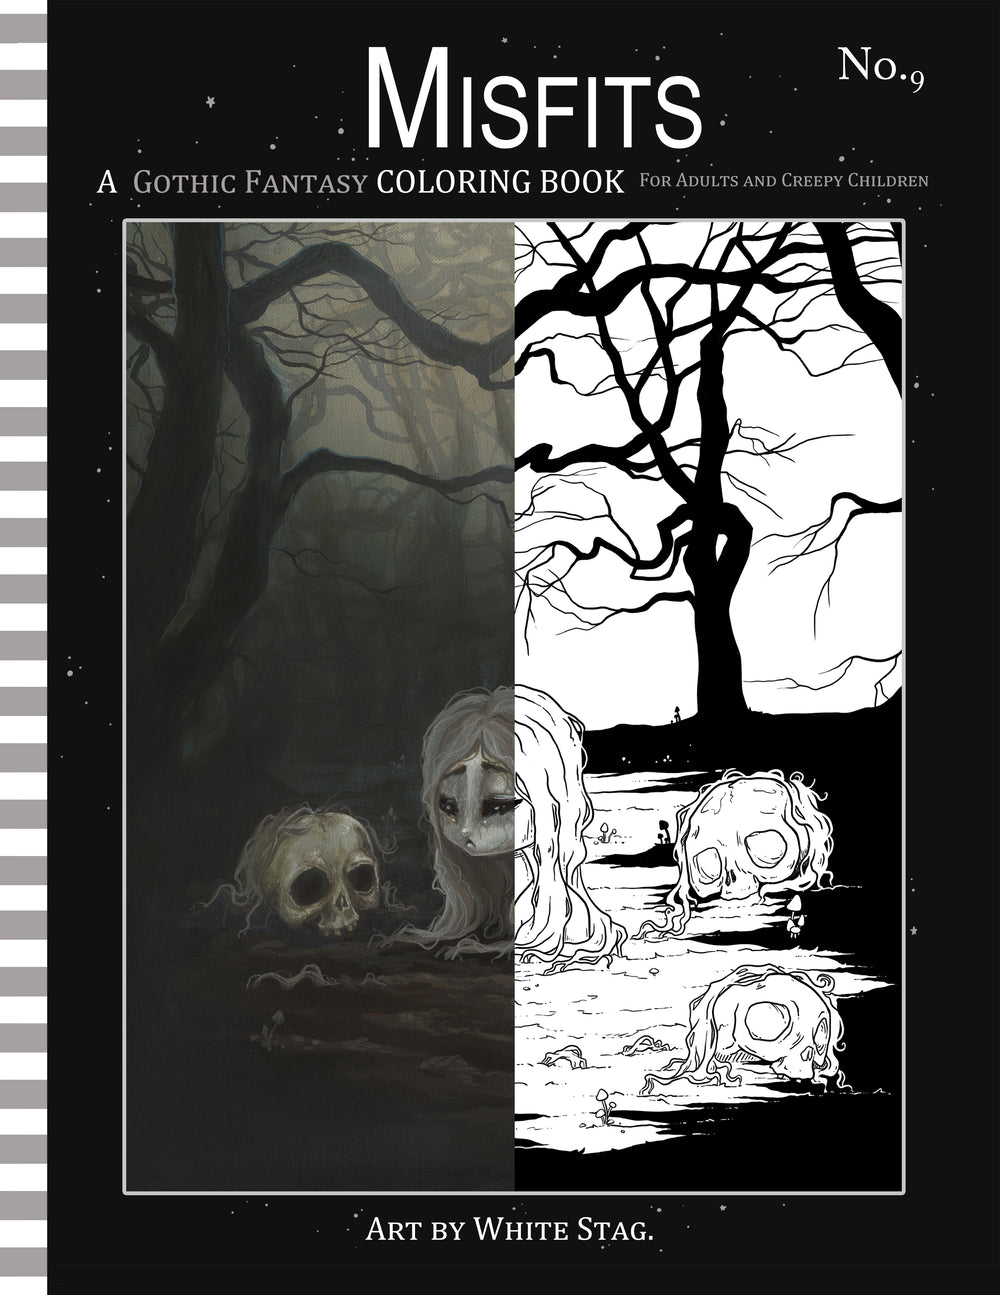 Misfits GOTHIC FANTASY coloring book No. 9 -Lowbrow misfits White Stag Art